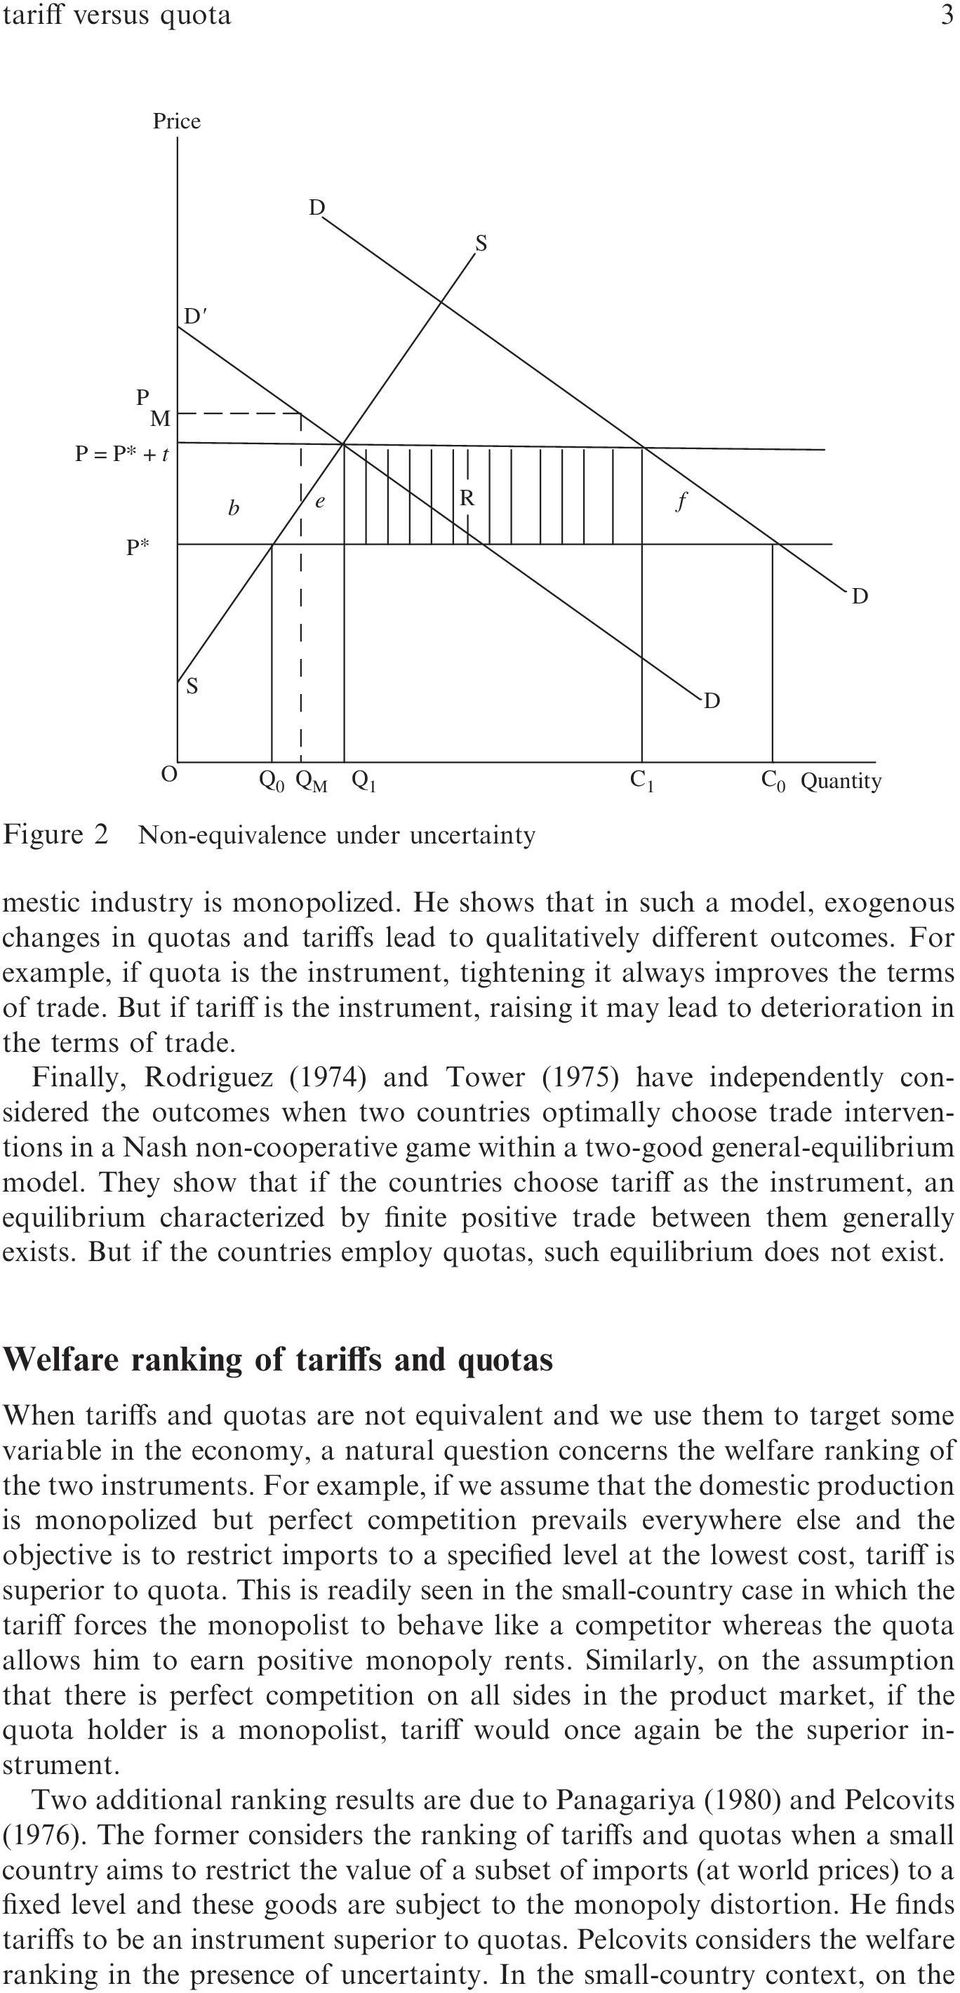 For example, if quota is the instrument, tightening it always improves the terms of trade. But if tariff is the instrument, raising it may lead to deterioration in the terms of trade.